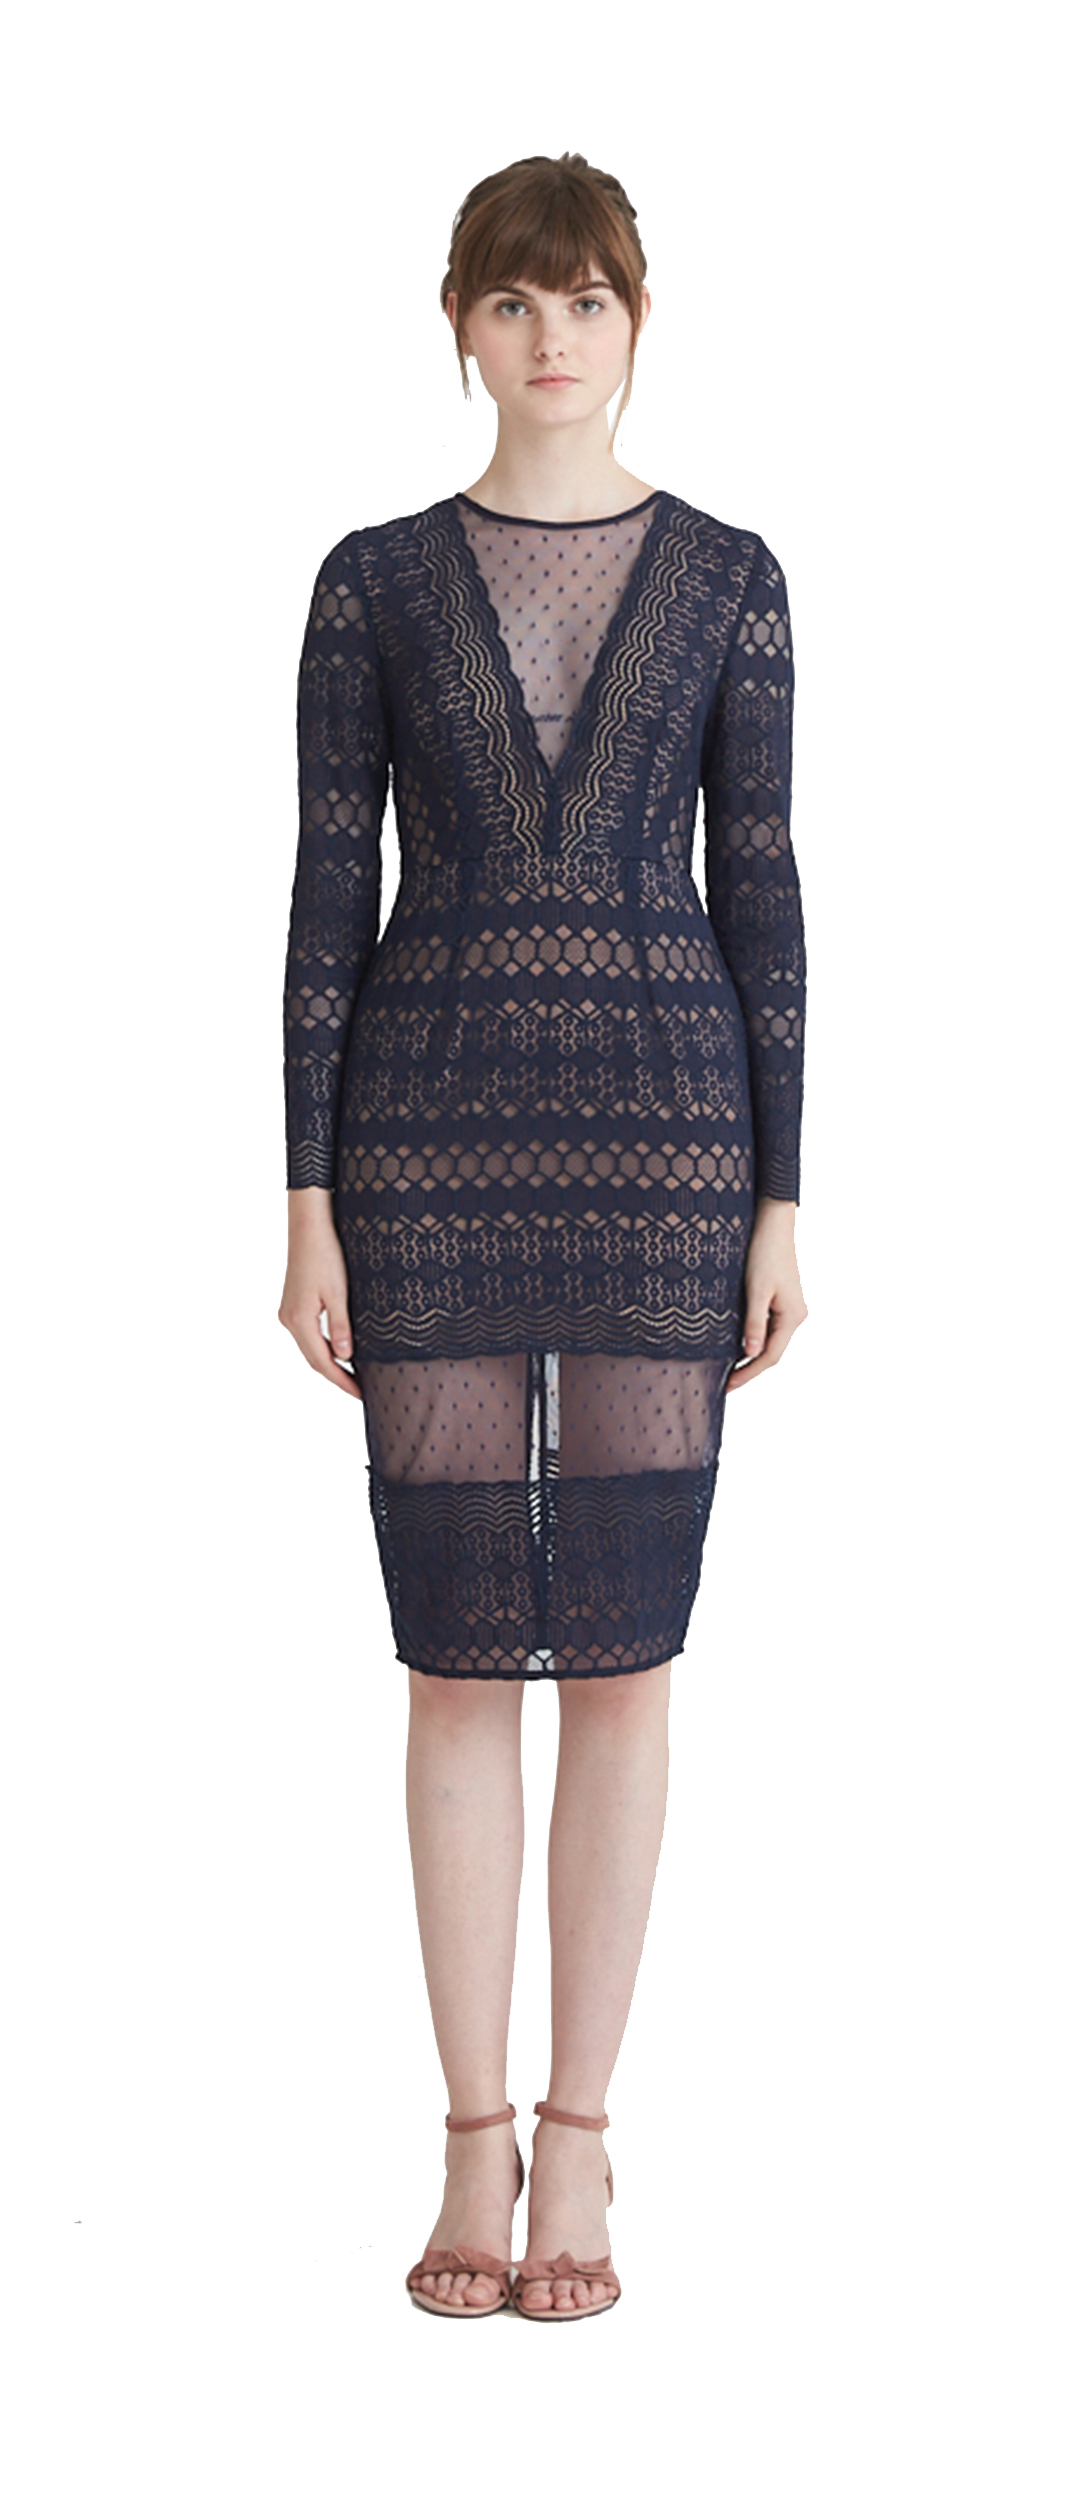 5664b7a0e8 RYLEE LACE LONG SLEEVE PENCIL DRESS  299.00